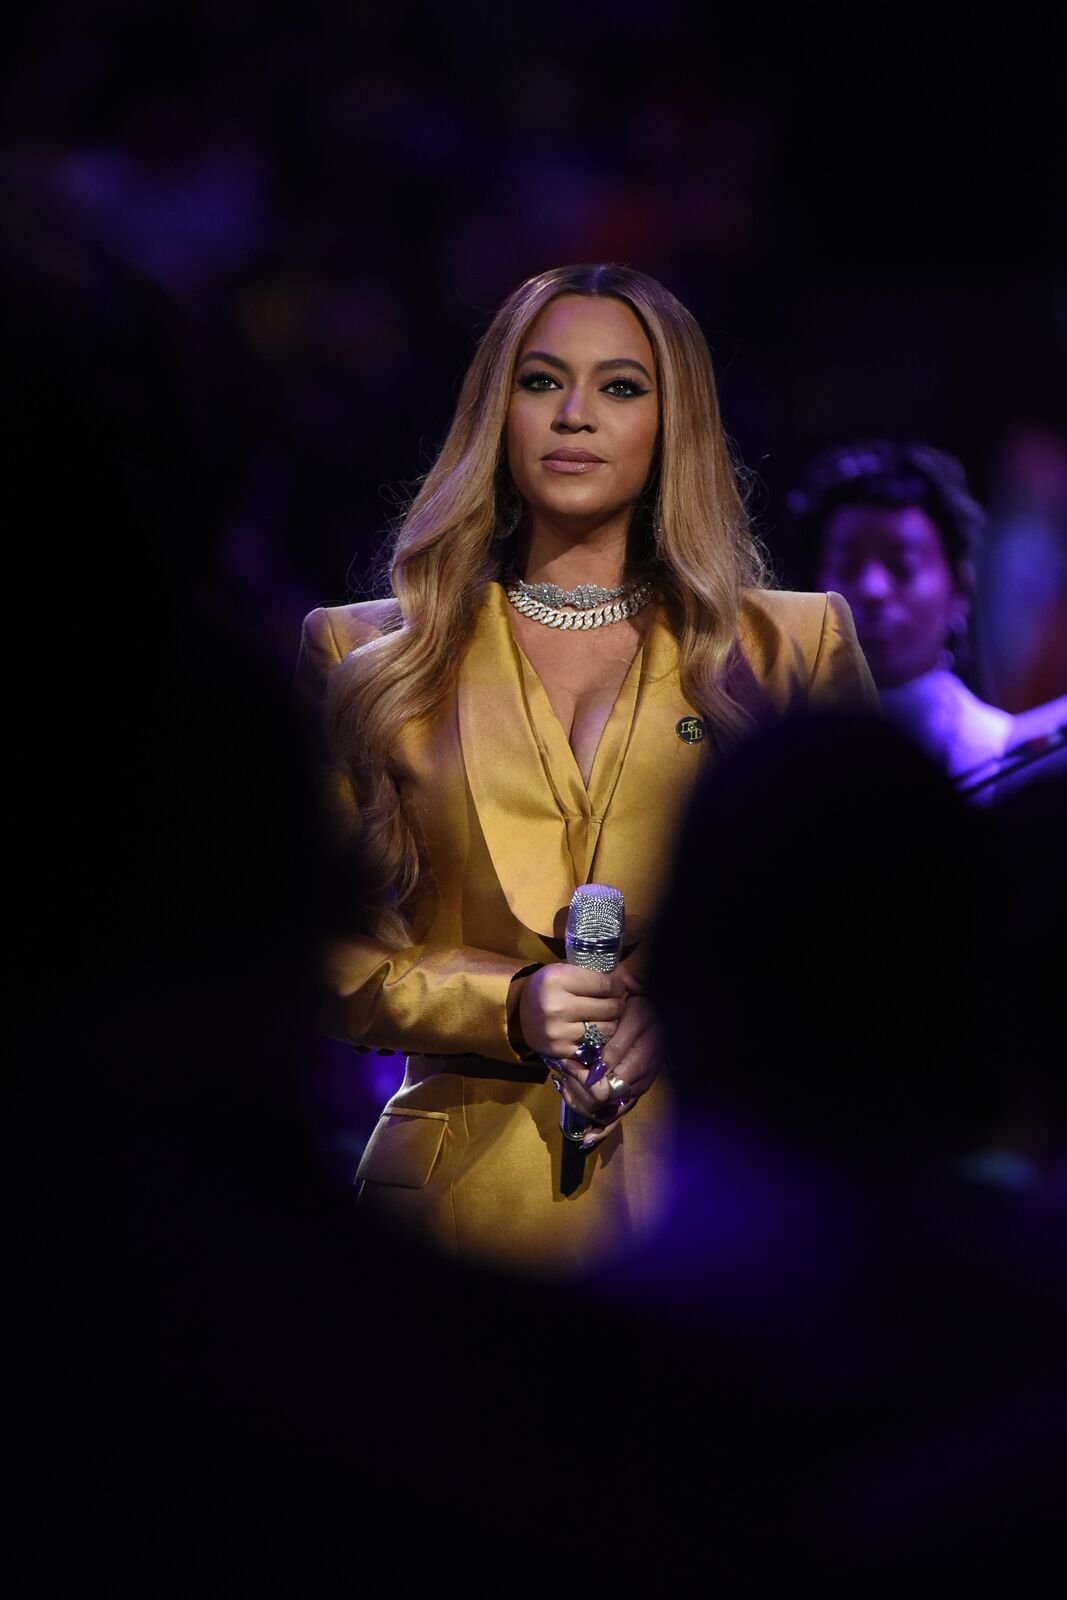 Beyoncé at the Kobe Bryant Memorial Service on February 24, 2020. | Photo: Getty Images